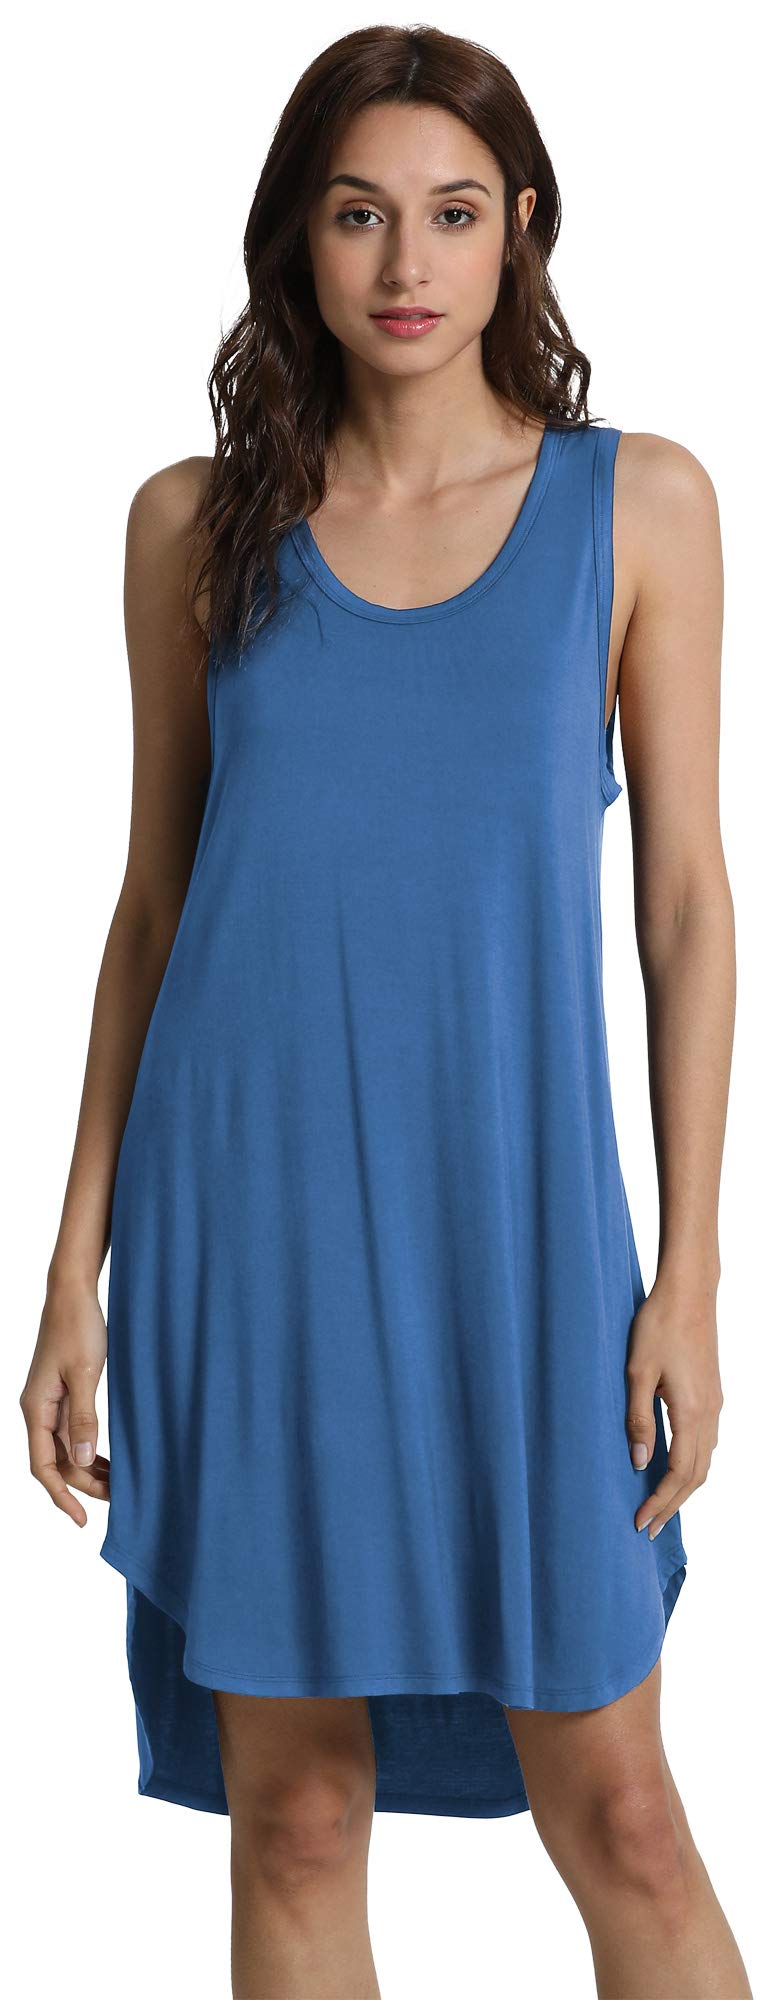 GYS Women's Soft Bamboo Scoop Neck Nightgown, X Large, Prussian Blue